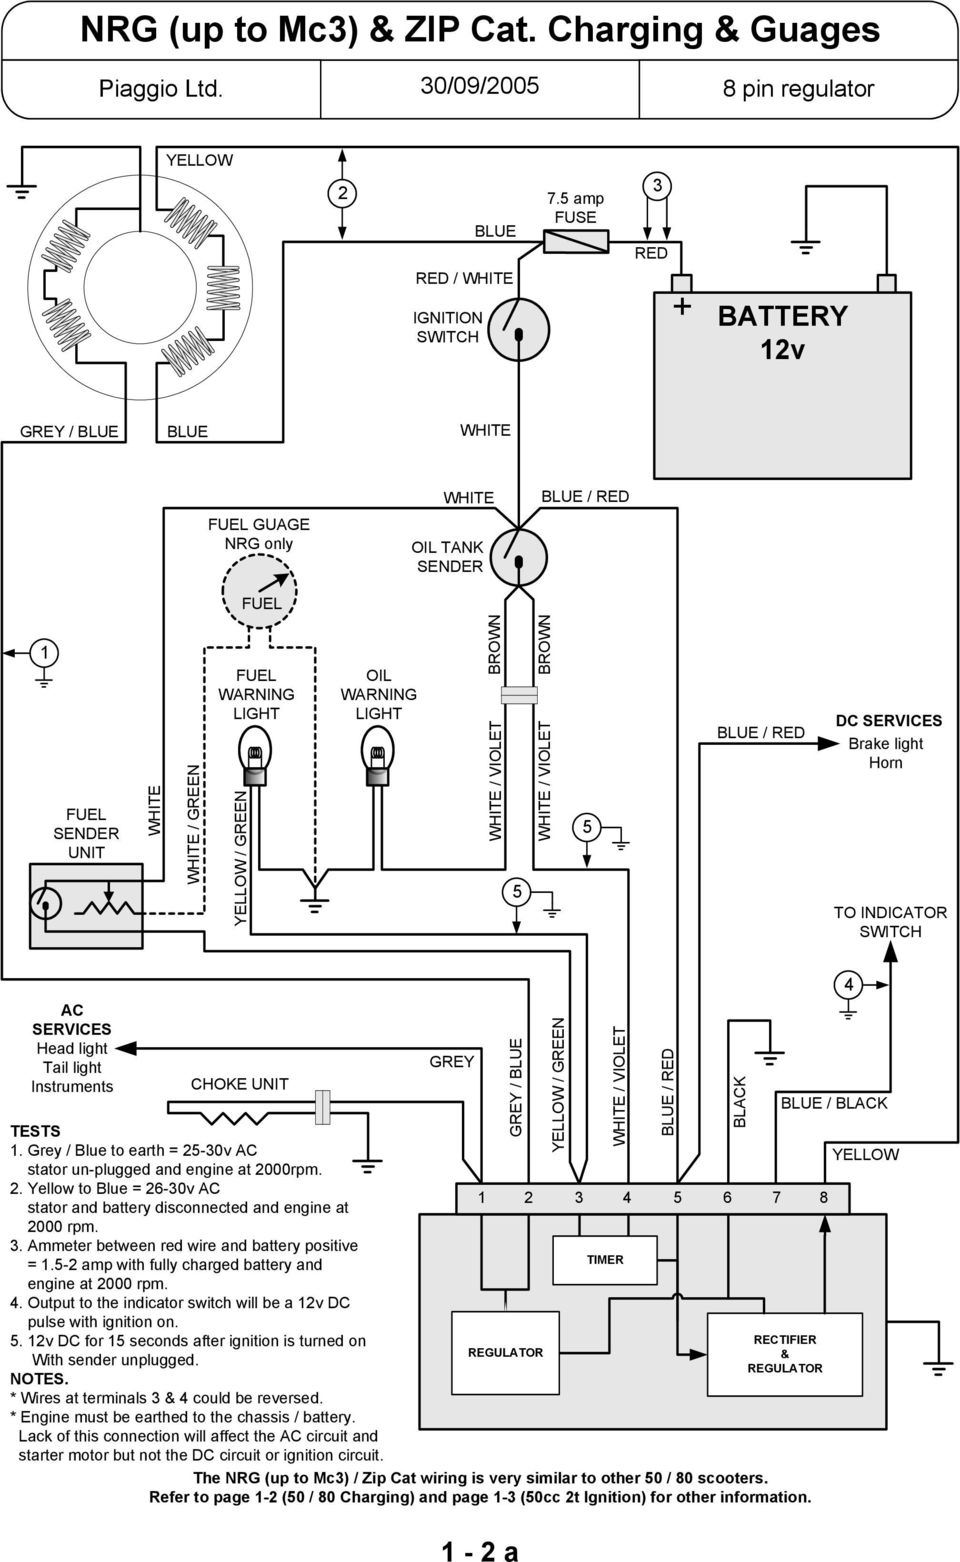 Piaggio Nrg Mc3 Wiring Diagram